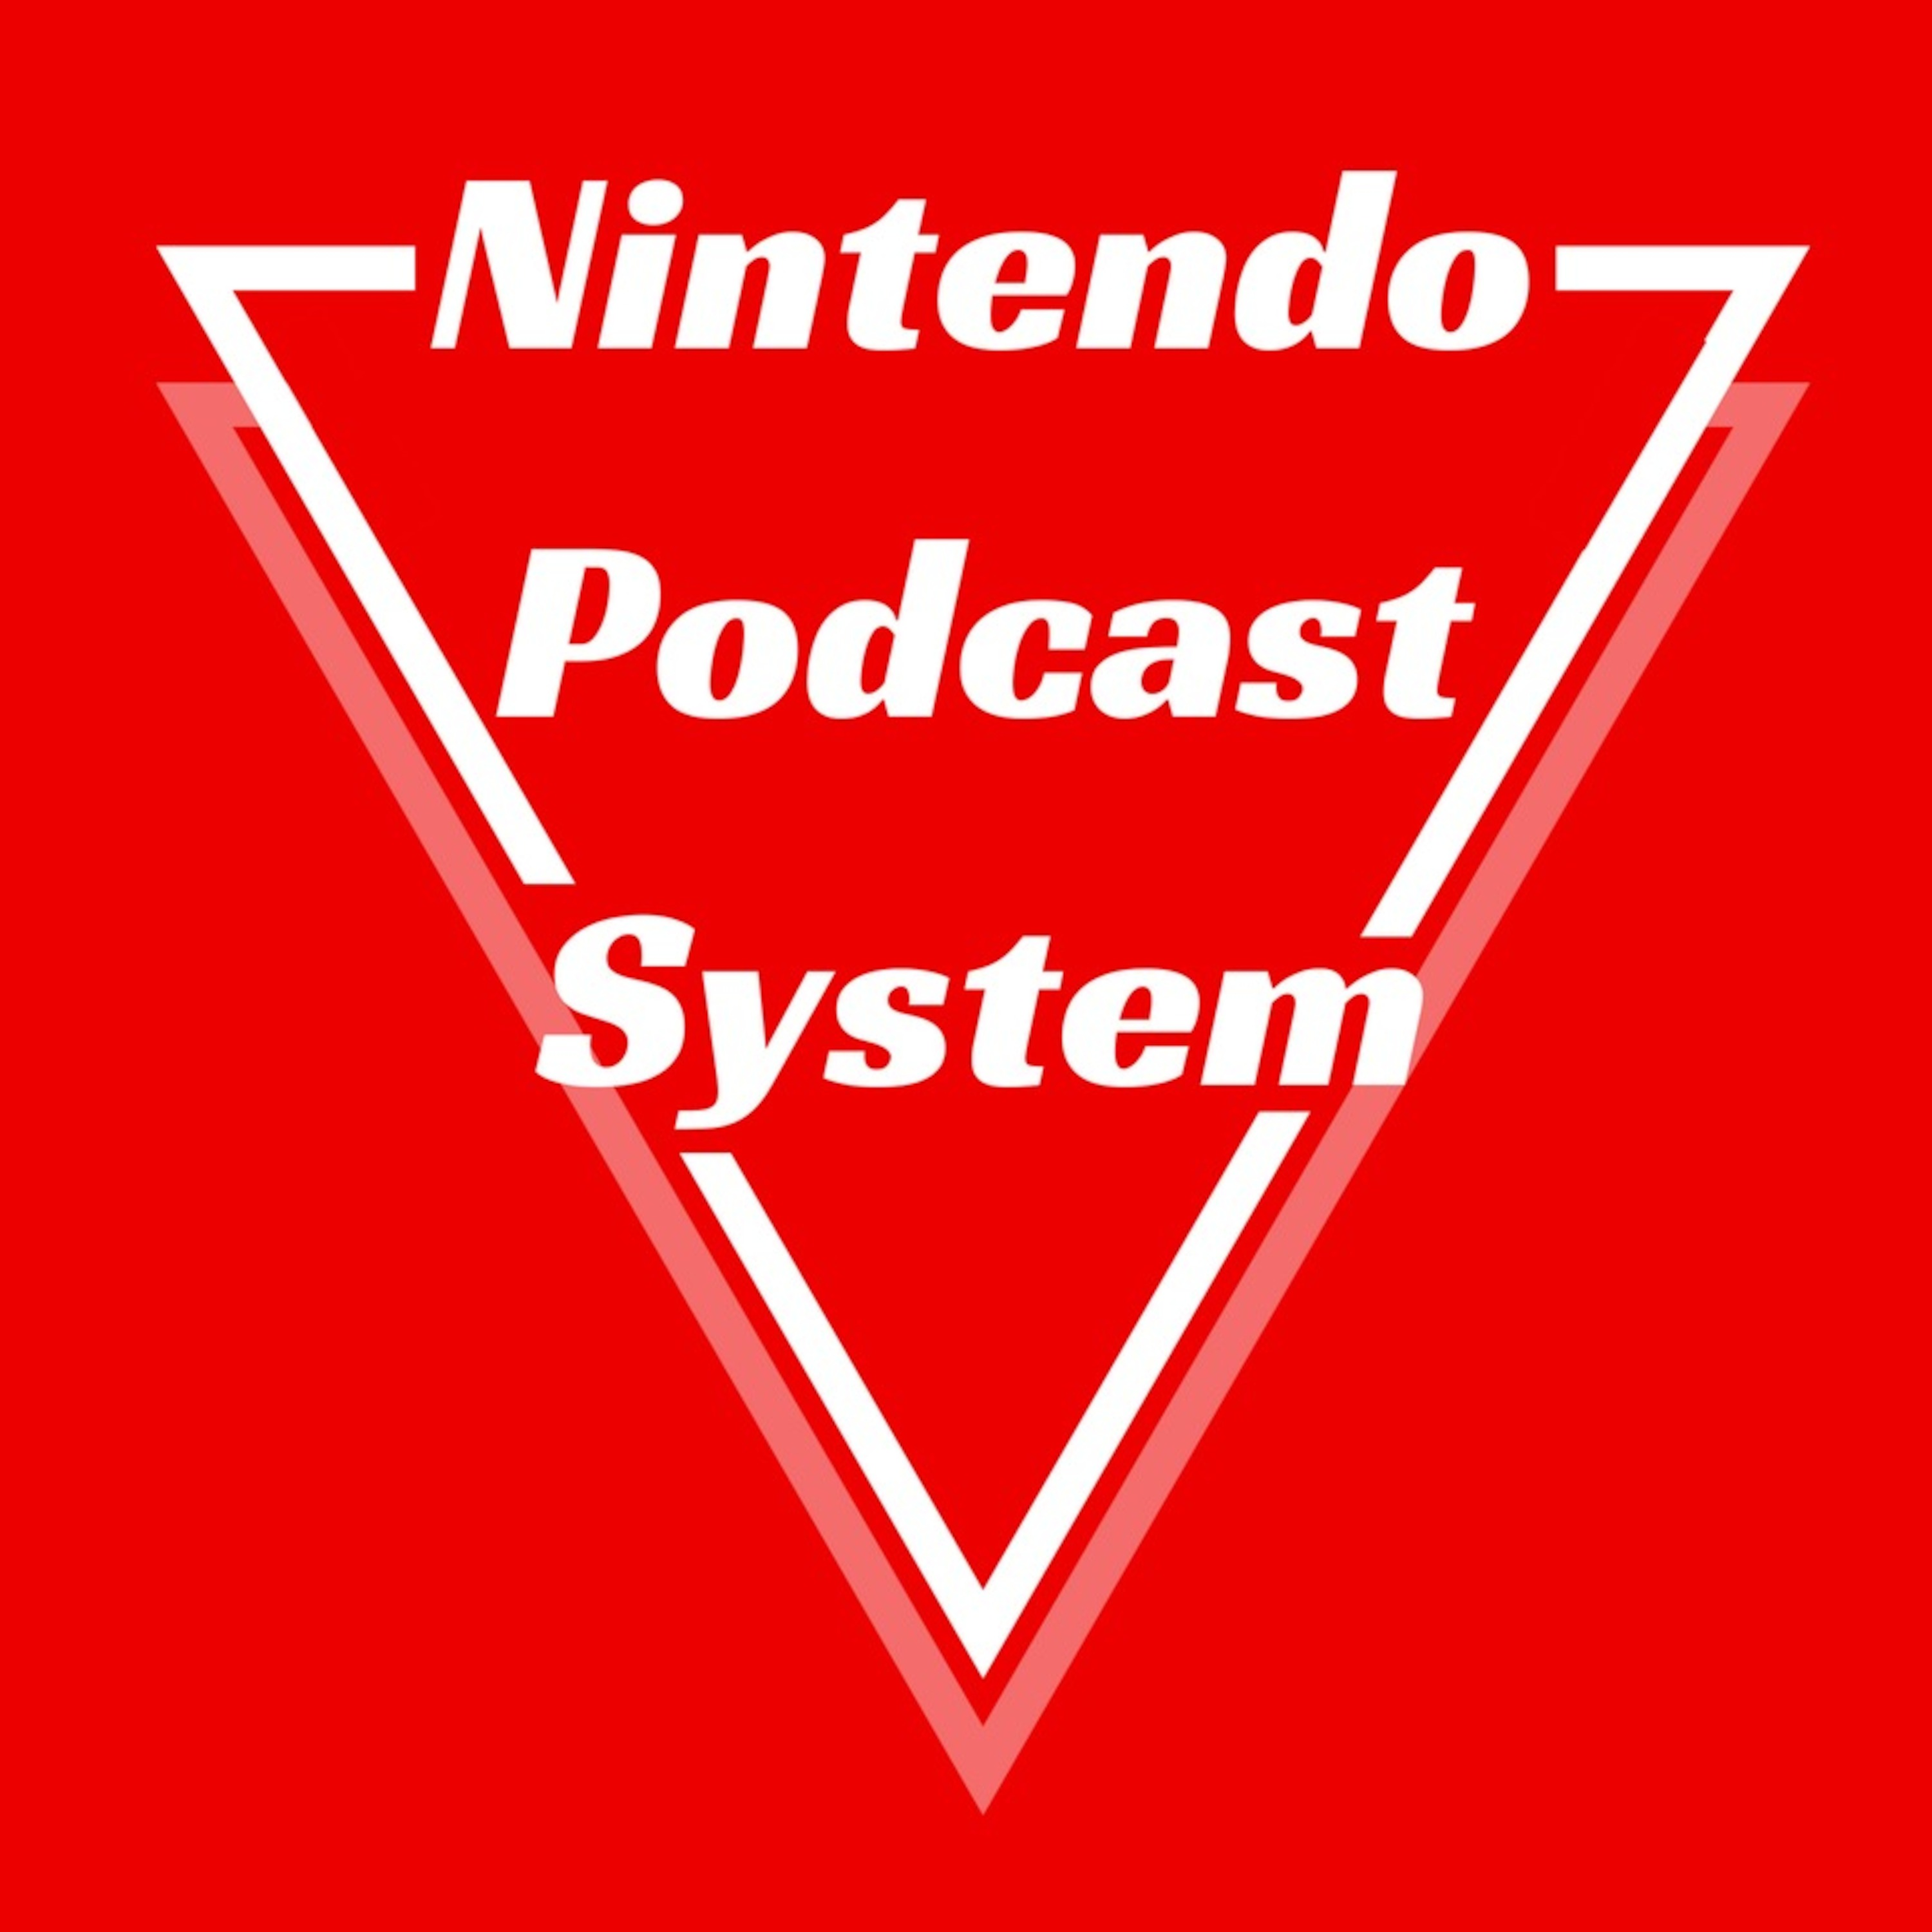 Nintendo Podcast System Ep. 58 - We're Leaving the Wii U